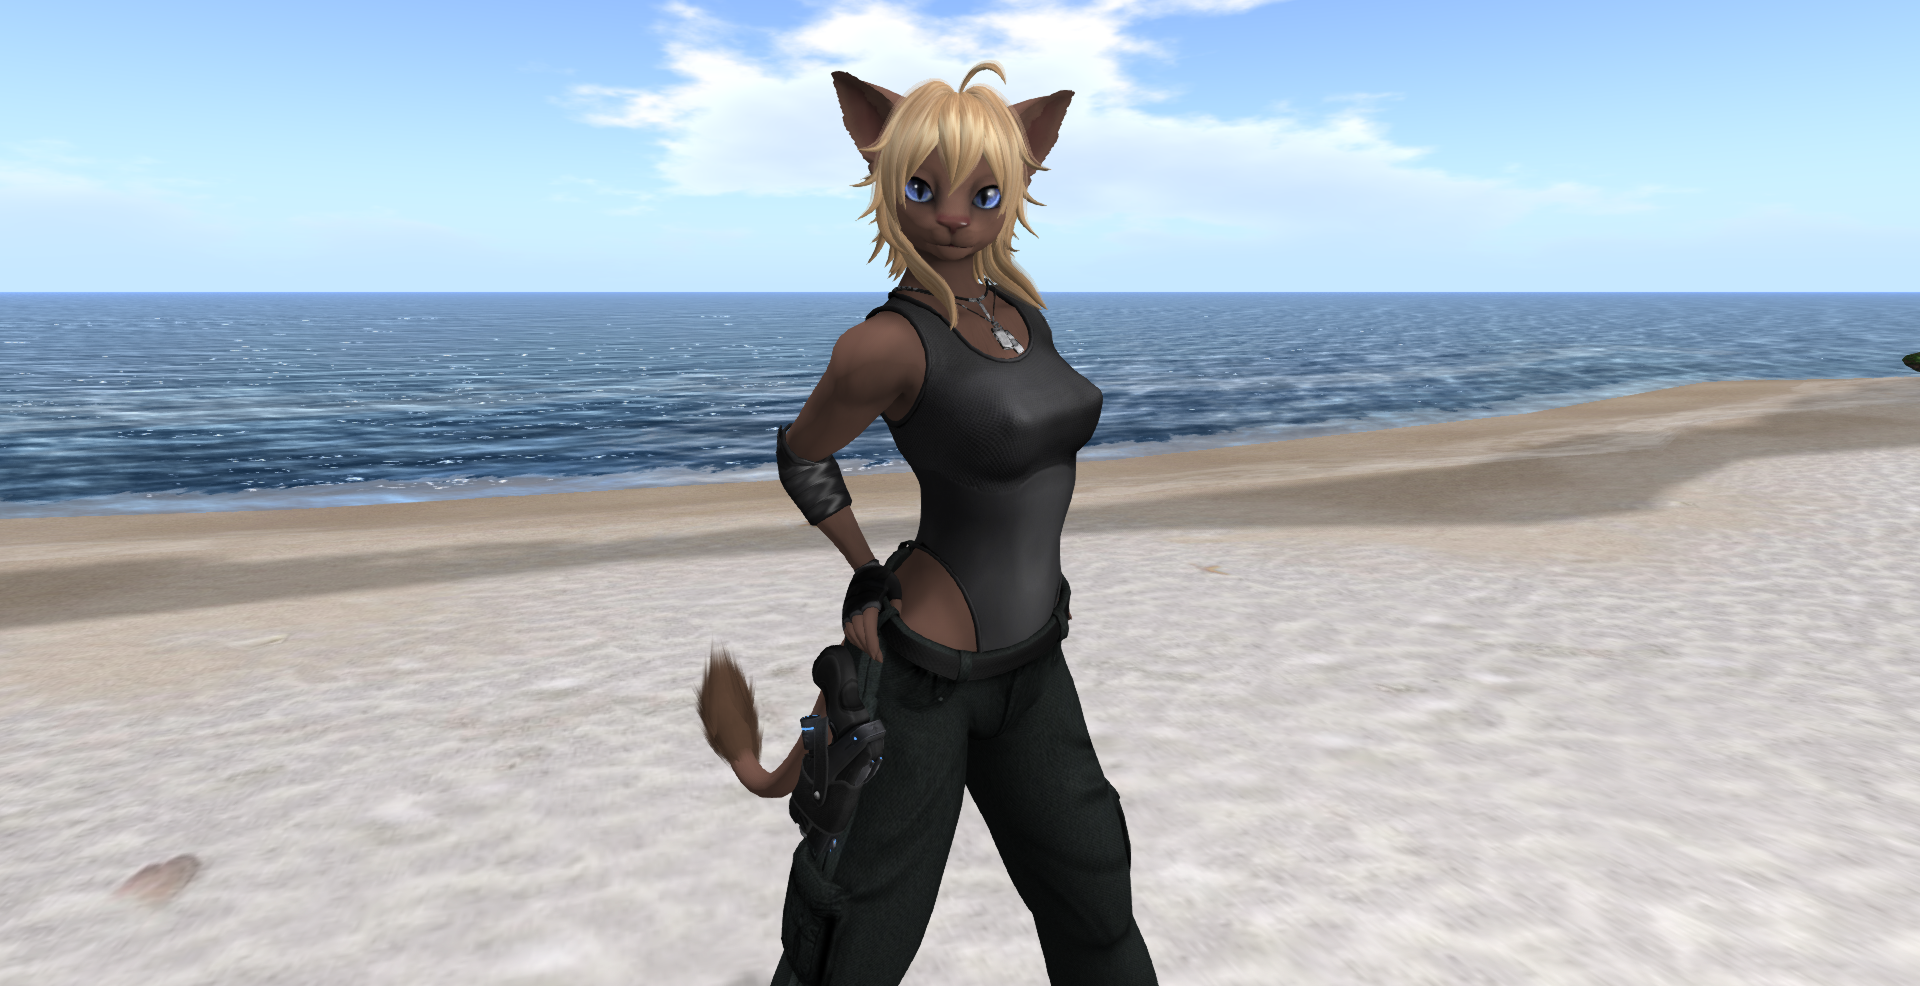 M'raava for Pannonfurr second life by bangayo on DeviantArt